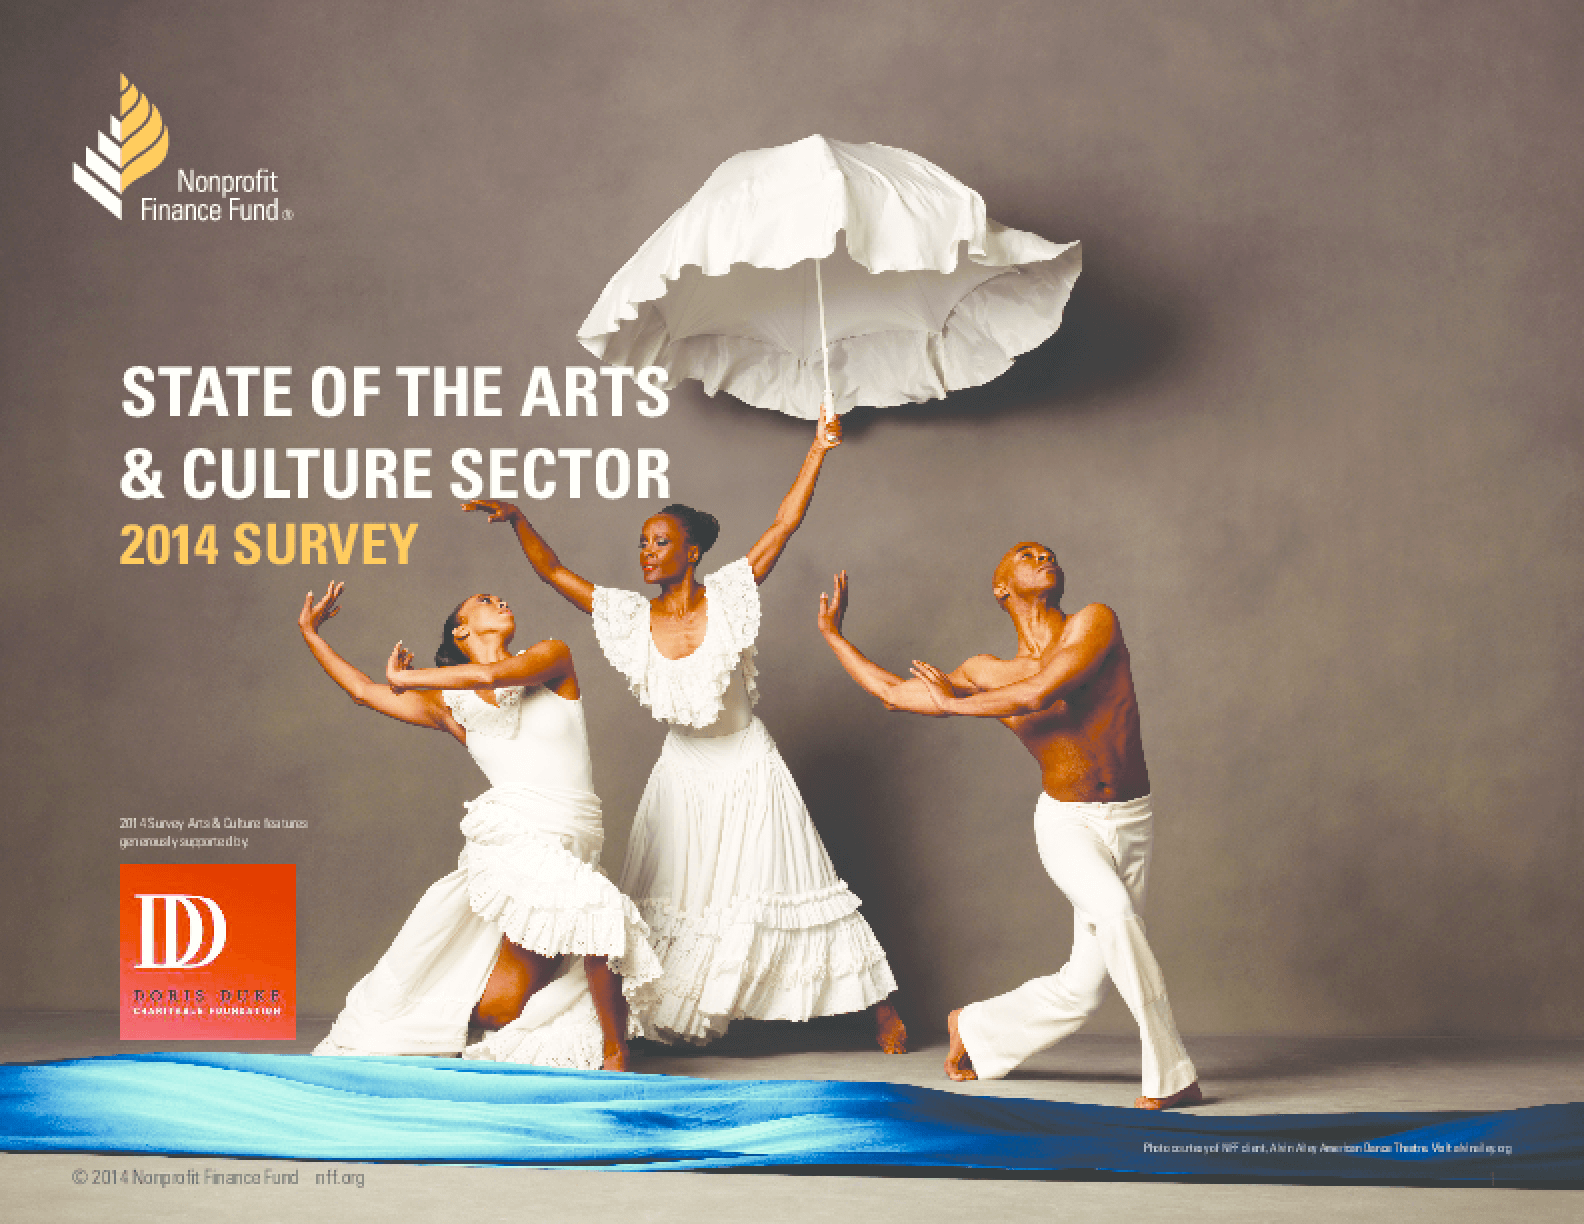 State of the Arts and Culture Sector: 2014 Survey